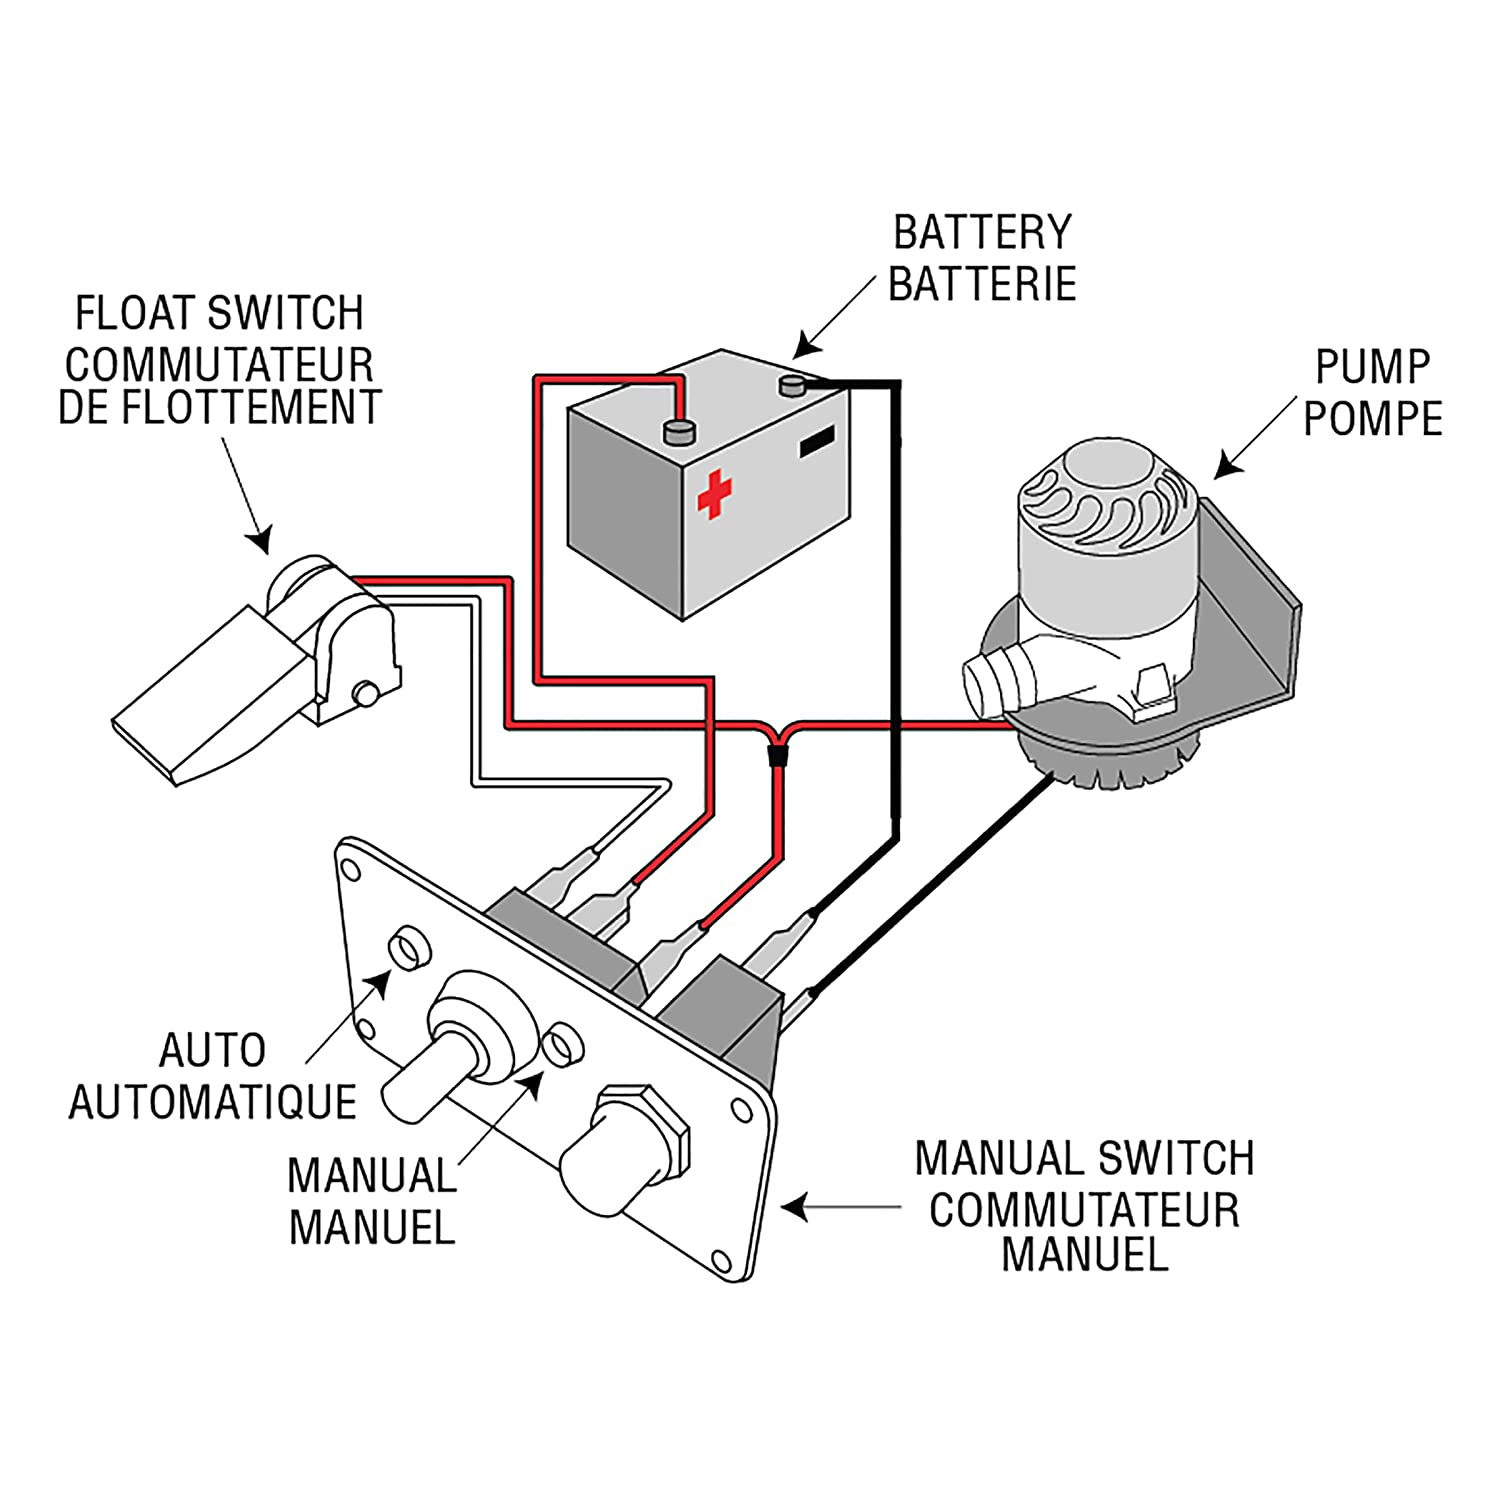 3 Way Float Switch Wiring Diagram